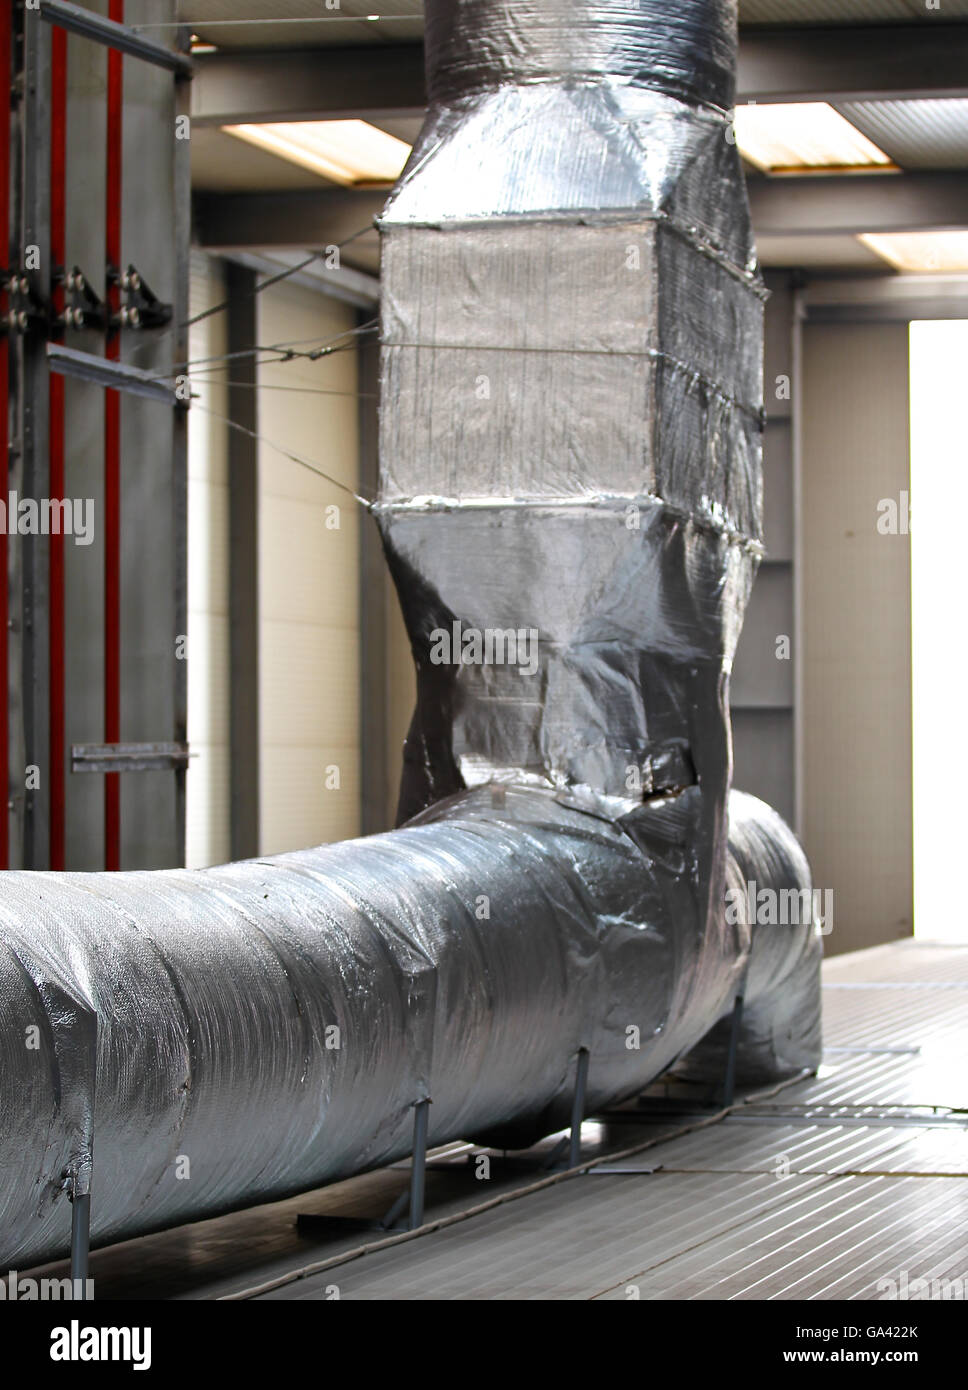 Industrial Ventilation Ducts : Ducts as elements of a powerful industrial ventilation